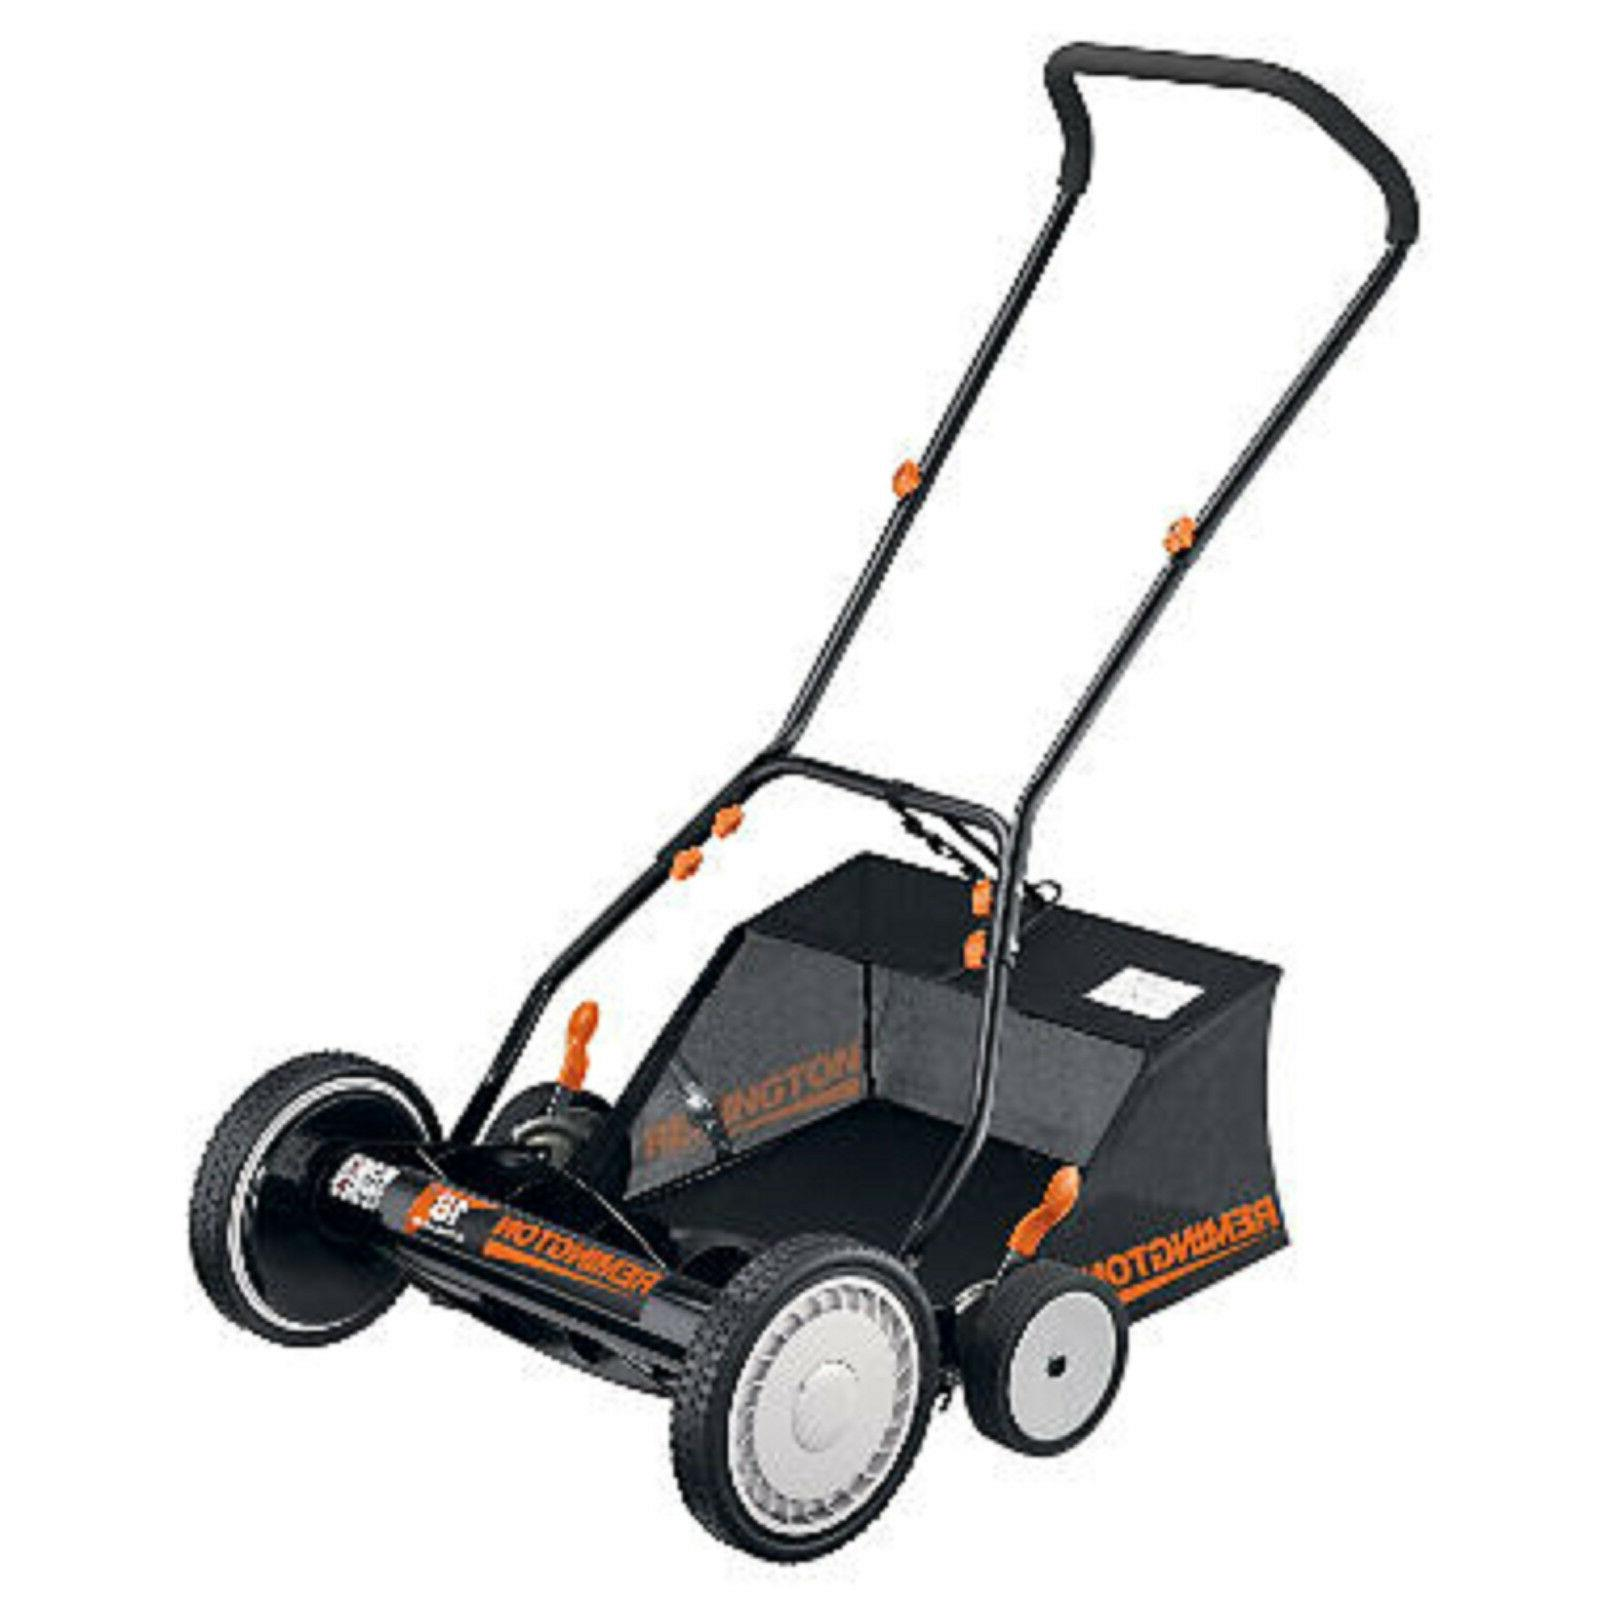 18 reel lawn mower or snow joe